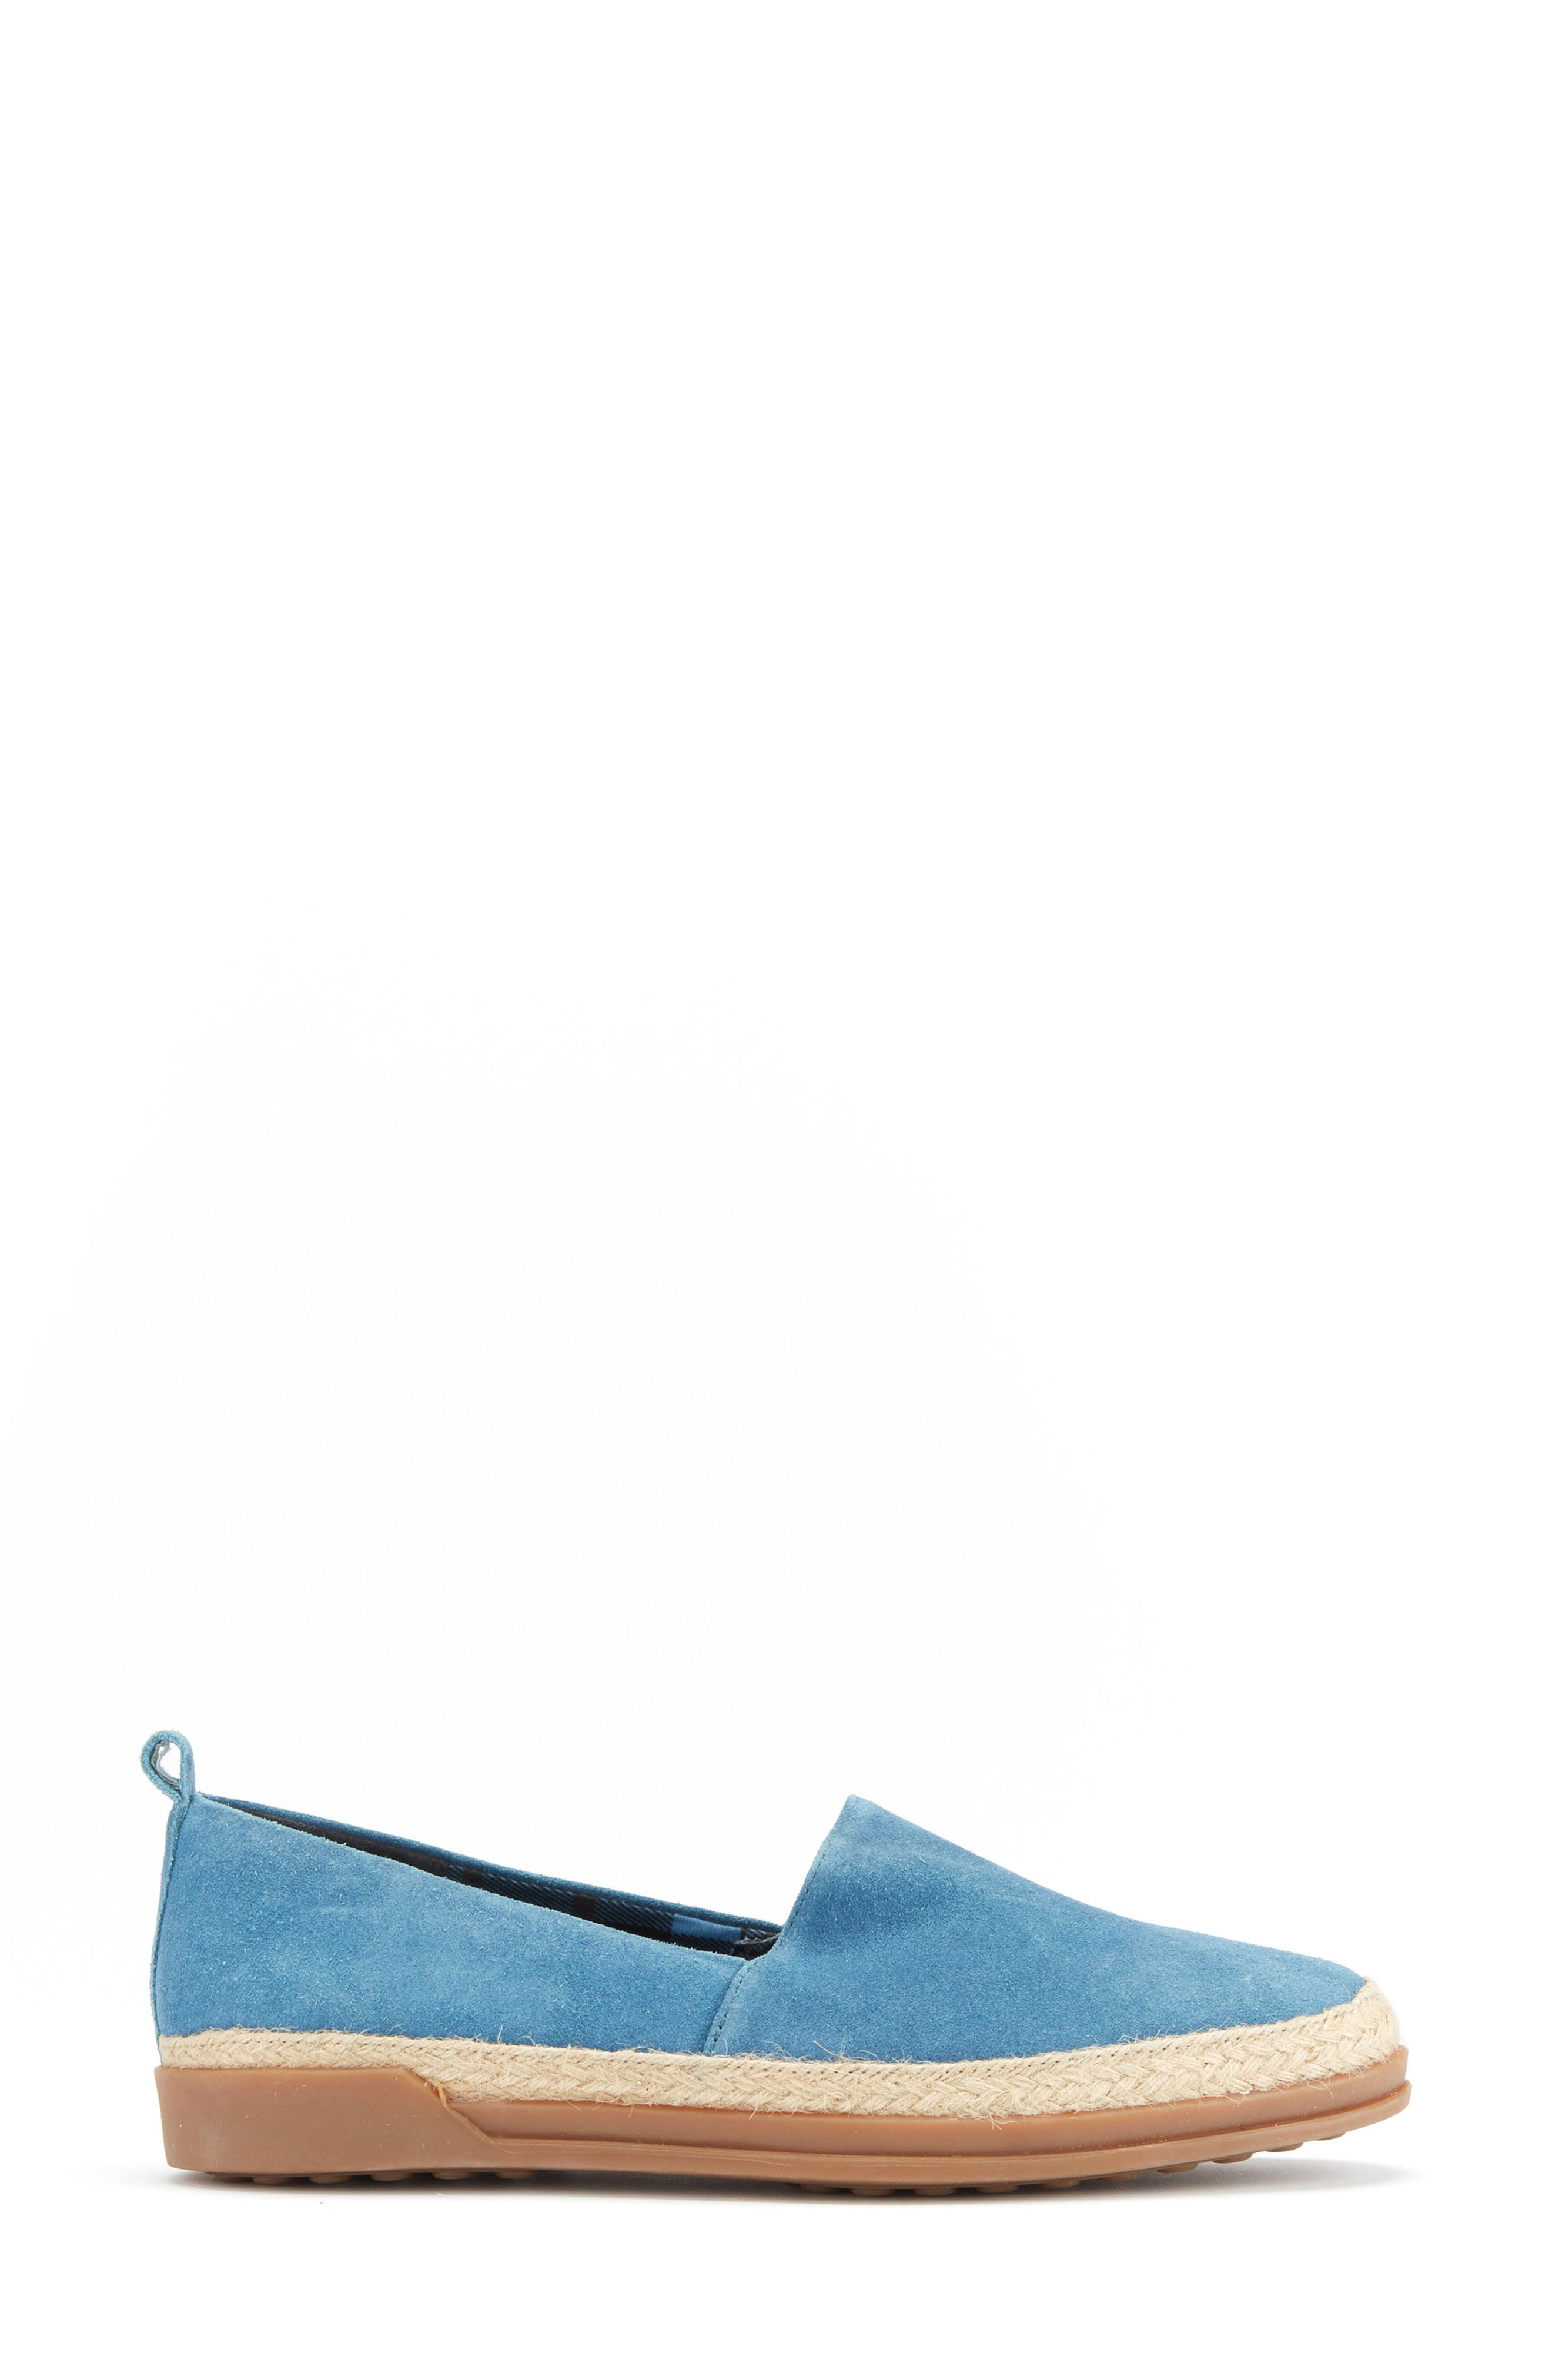 Bailey Espadrille Flat,                             Alternate thumbnail 3, color,                             Blue Suede